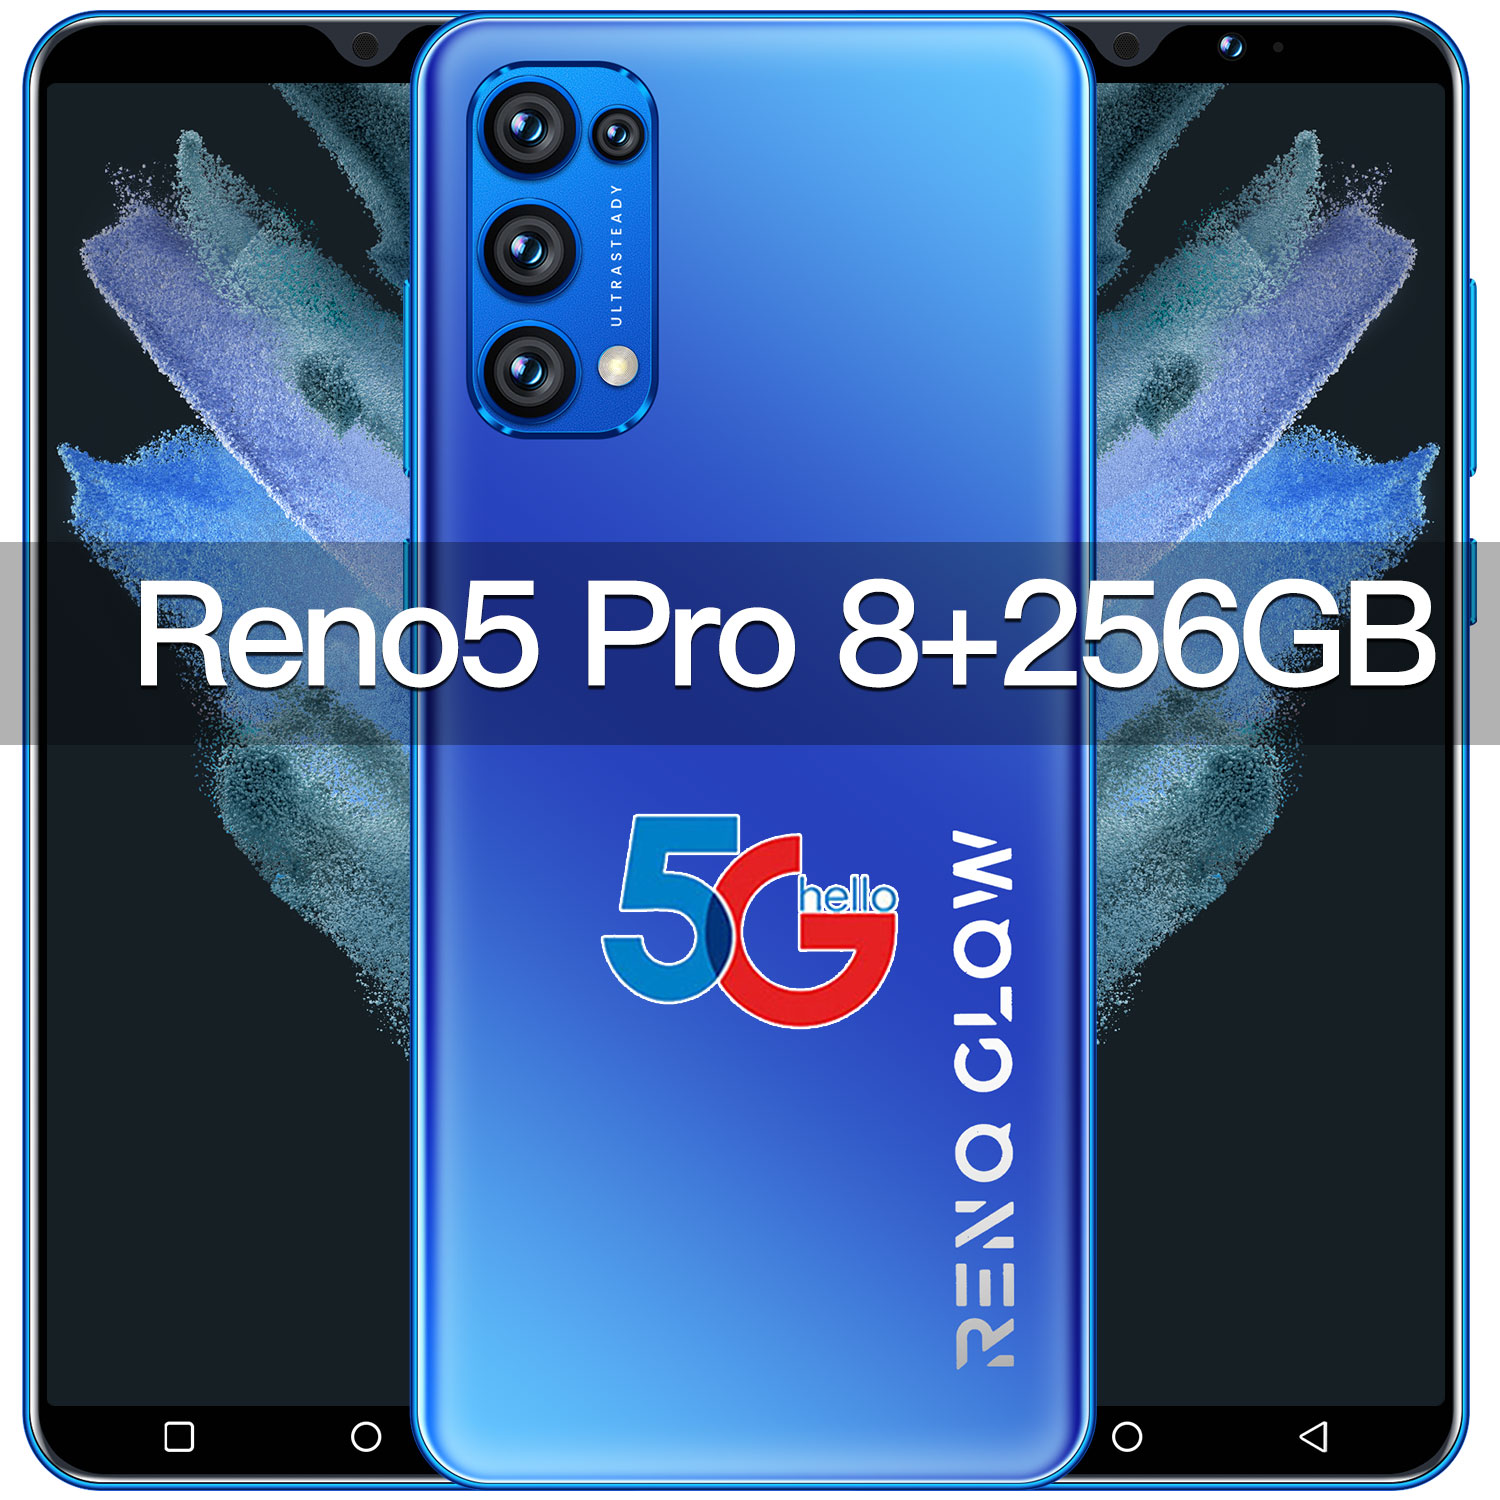 Rino5-Global Cell Phone, Smartphone with Fingerprint Recognition, Android 10, Mtk6889, Cordless, 6.0gb/128gb, 16+32mp